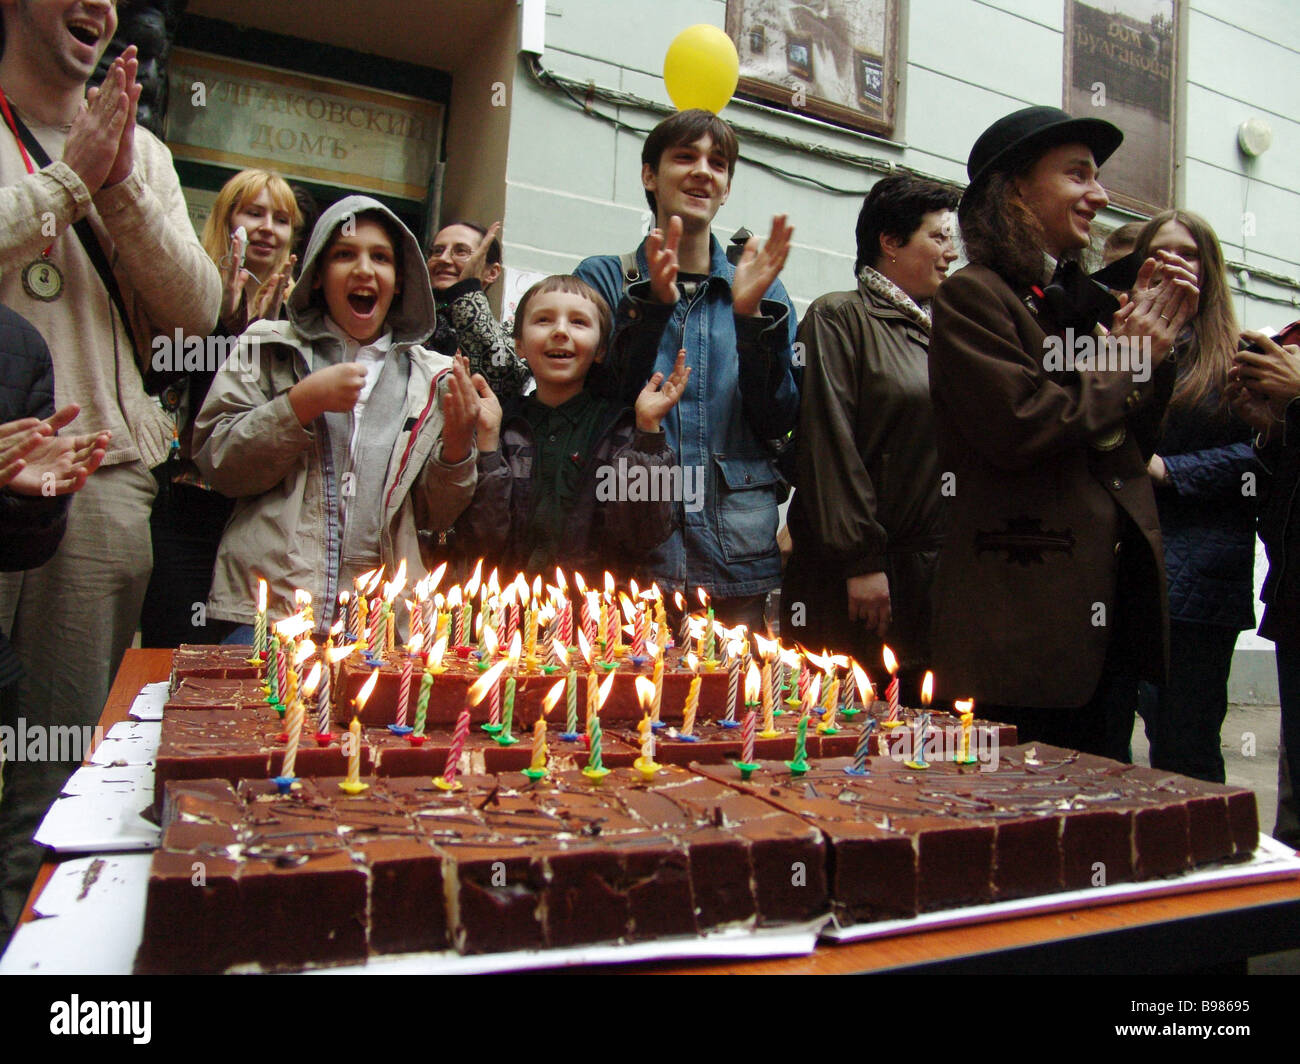 Celebrations devoted to Mikhail Bulgakov s 114th birth anniversary at the Bulgakov House cultural center - Stock Image